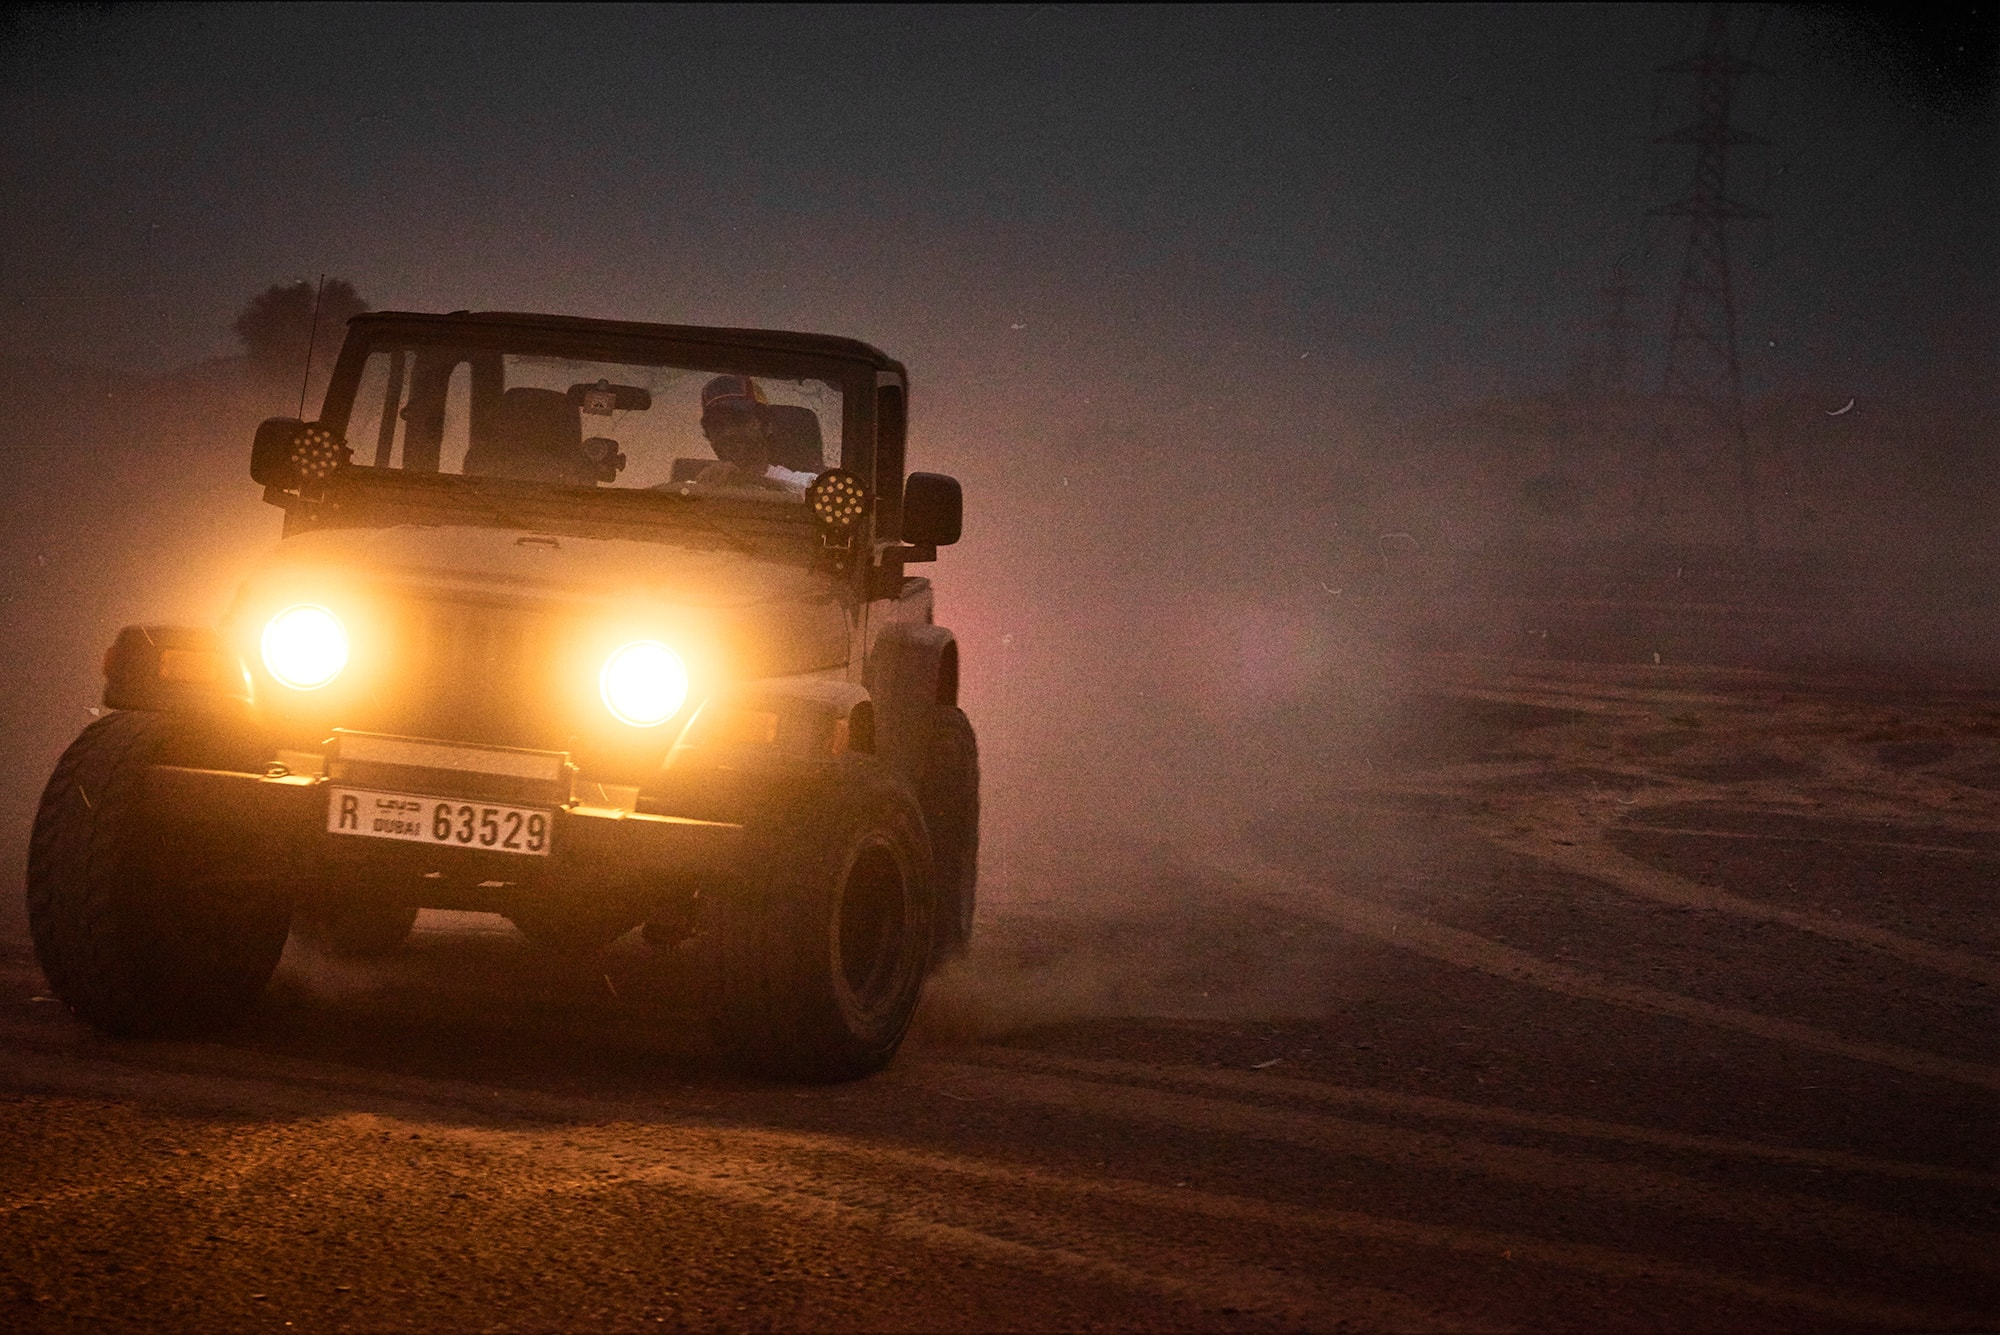 johannes kuehn photography and cgi berlin Dubai with Jeep